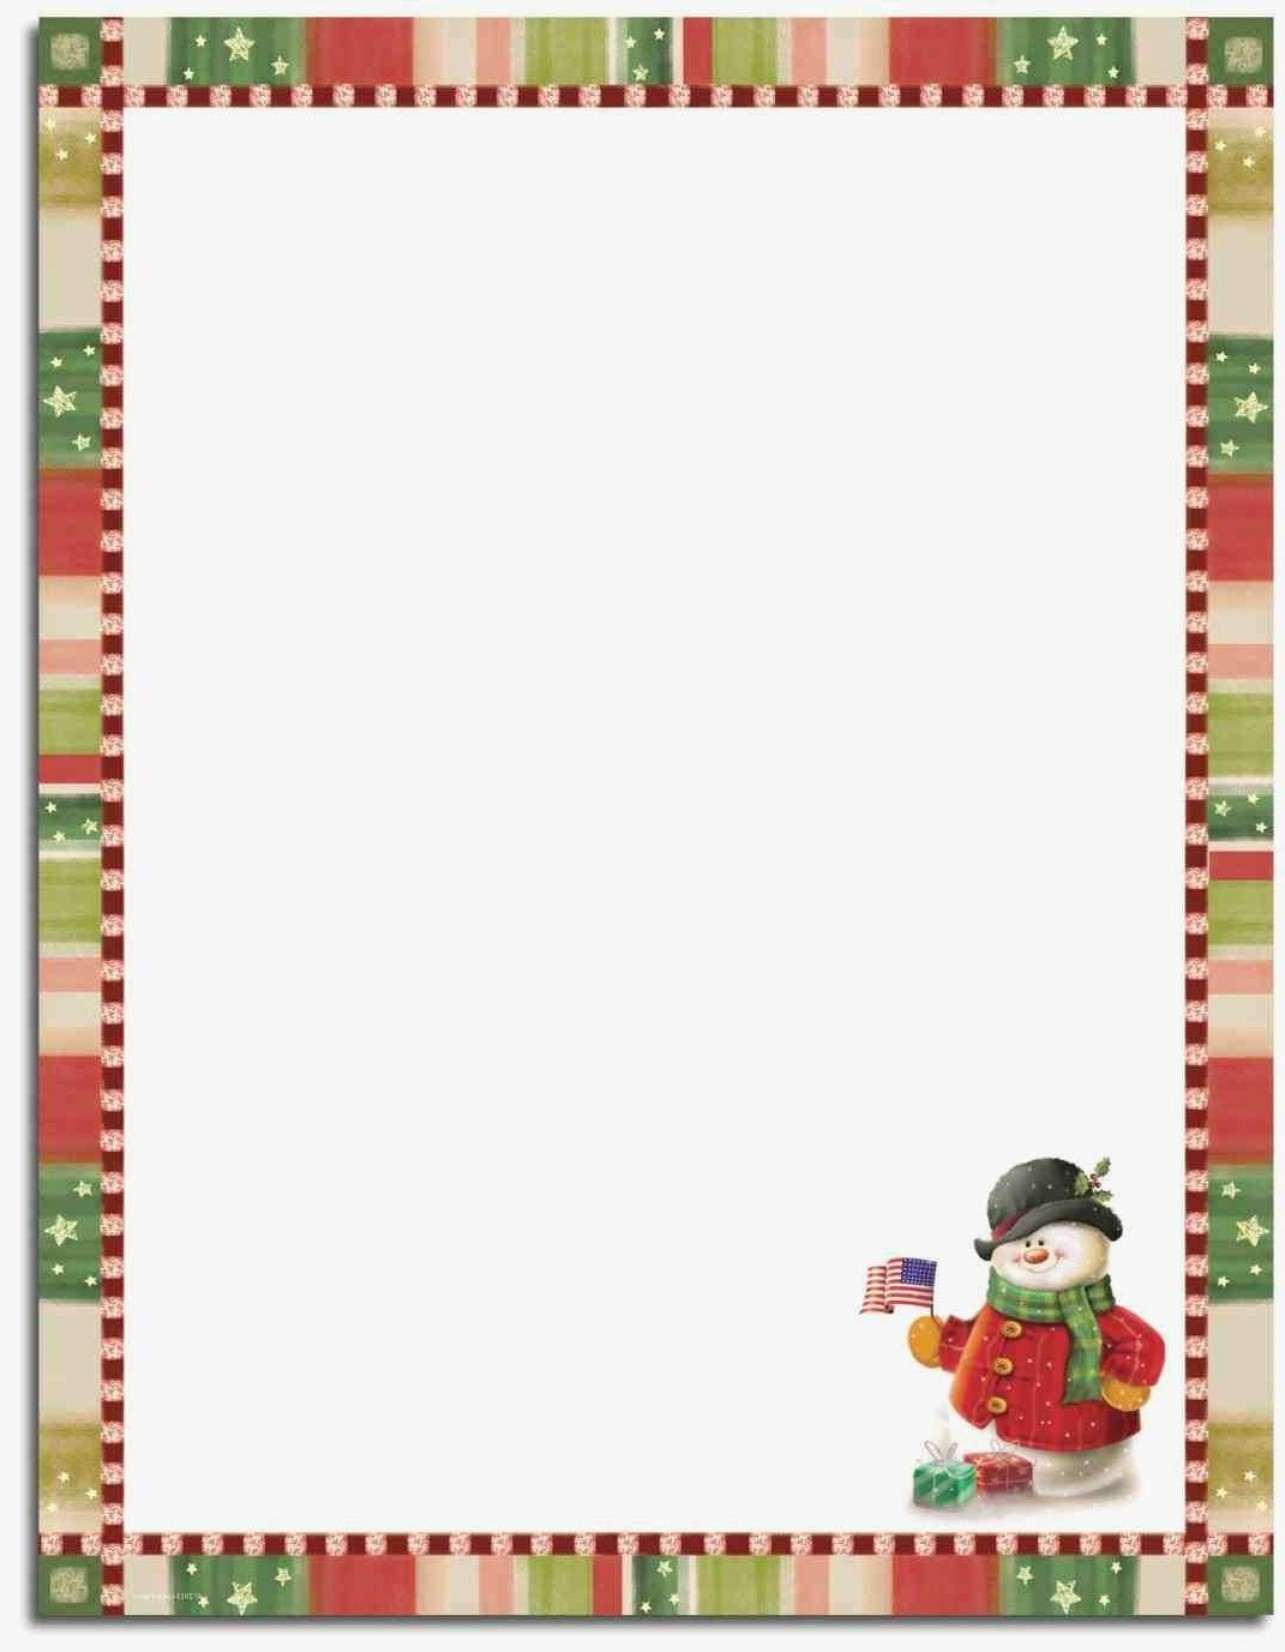 015 Microsoft Holiday Stationery Templates Free Elegant.